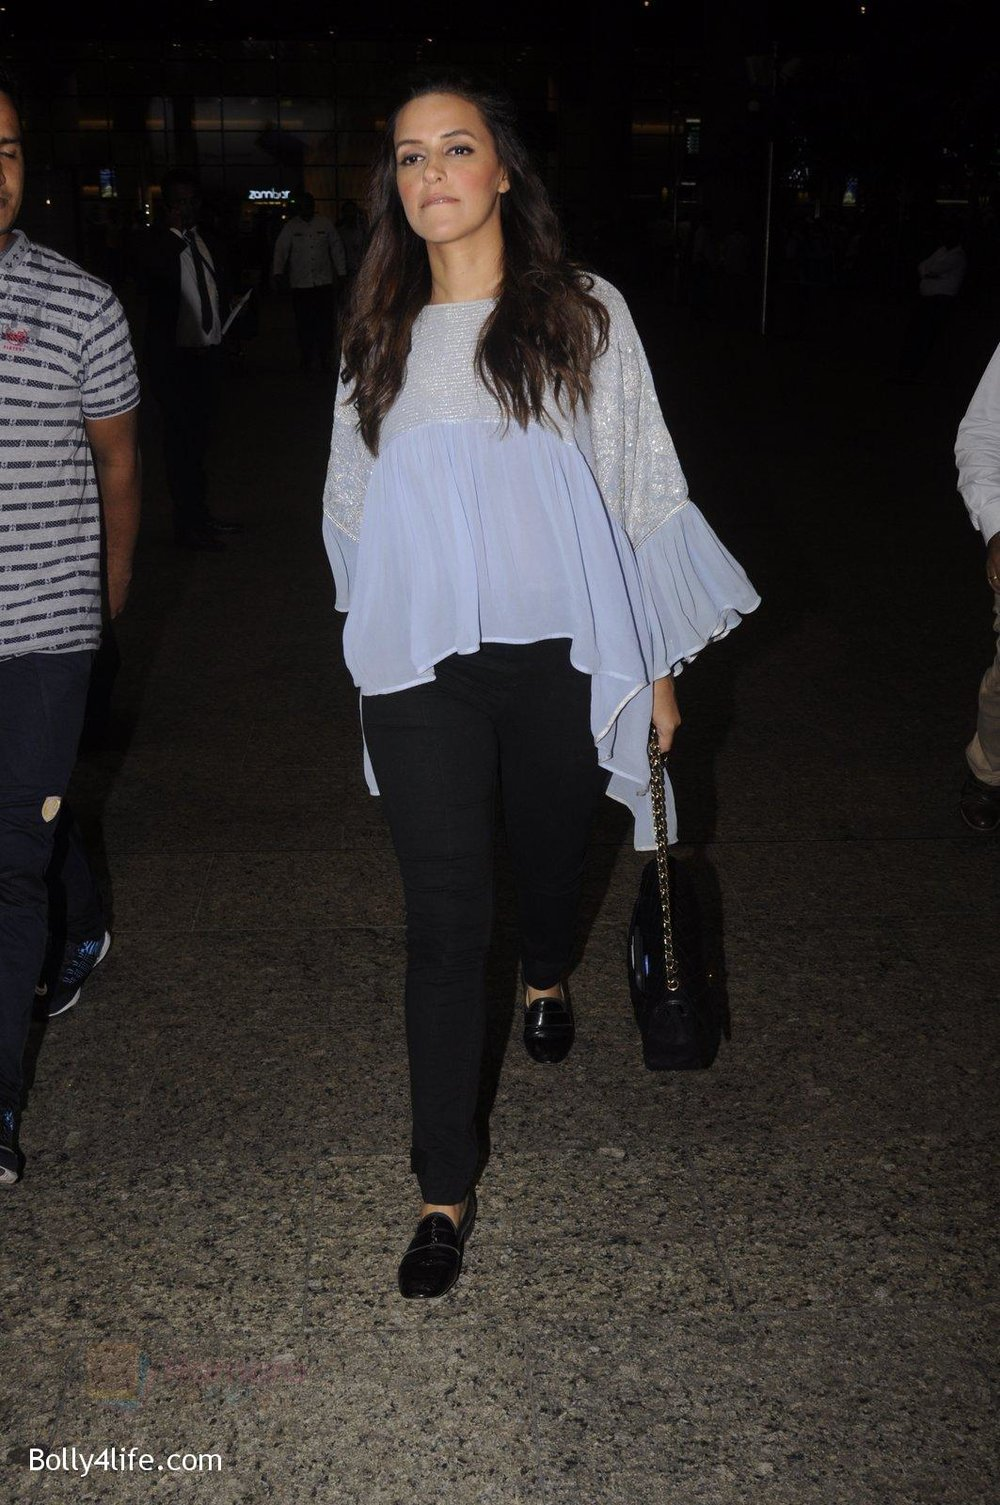 Neha-Dhupia-snapped-at-airport-on-20th-Sept-2016-43.jpg